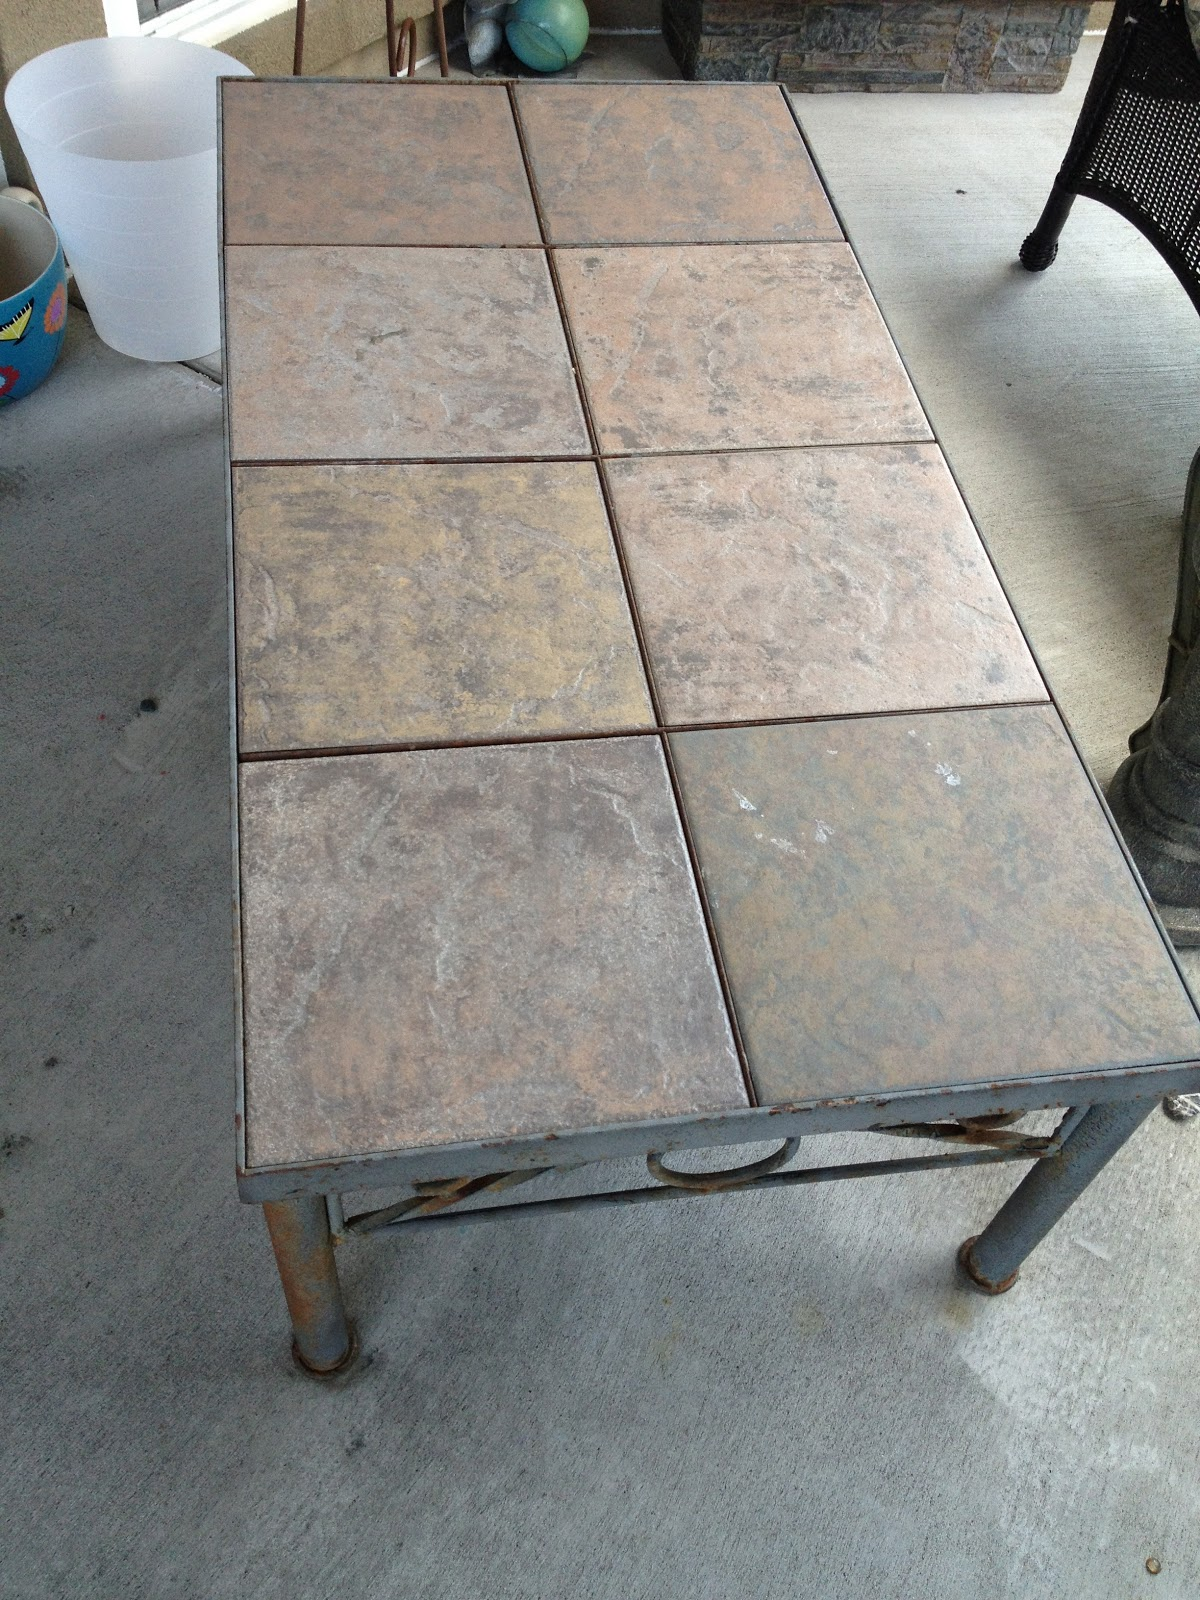 2013 Moving Sale Eden Prairie Metal And Tile Table Set With Removable Tiles Coffee